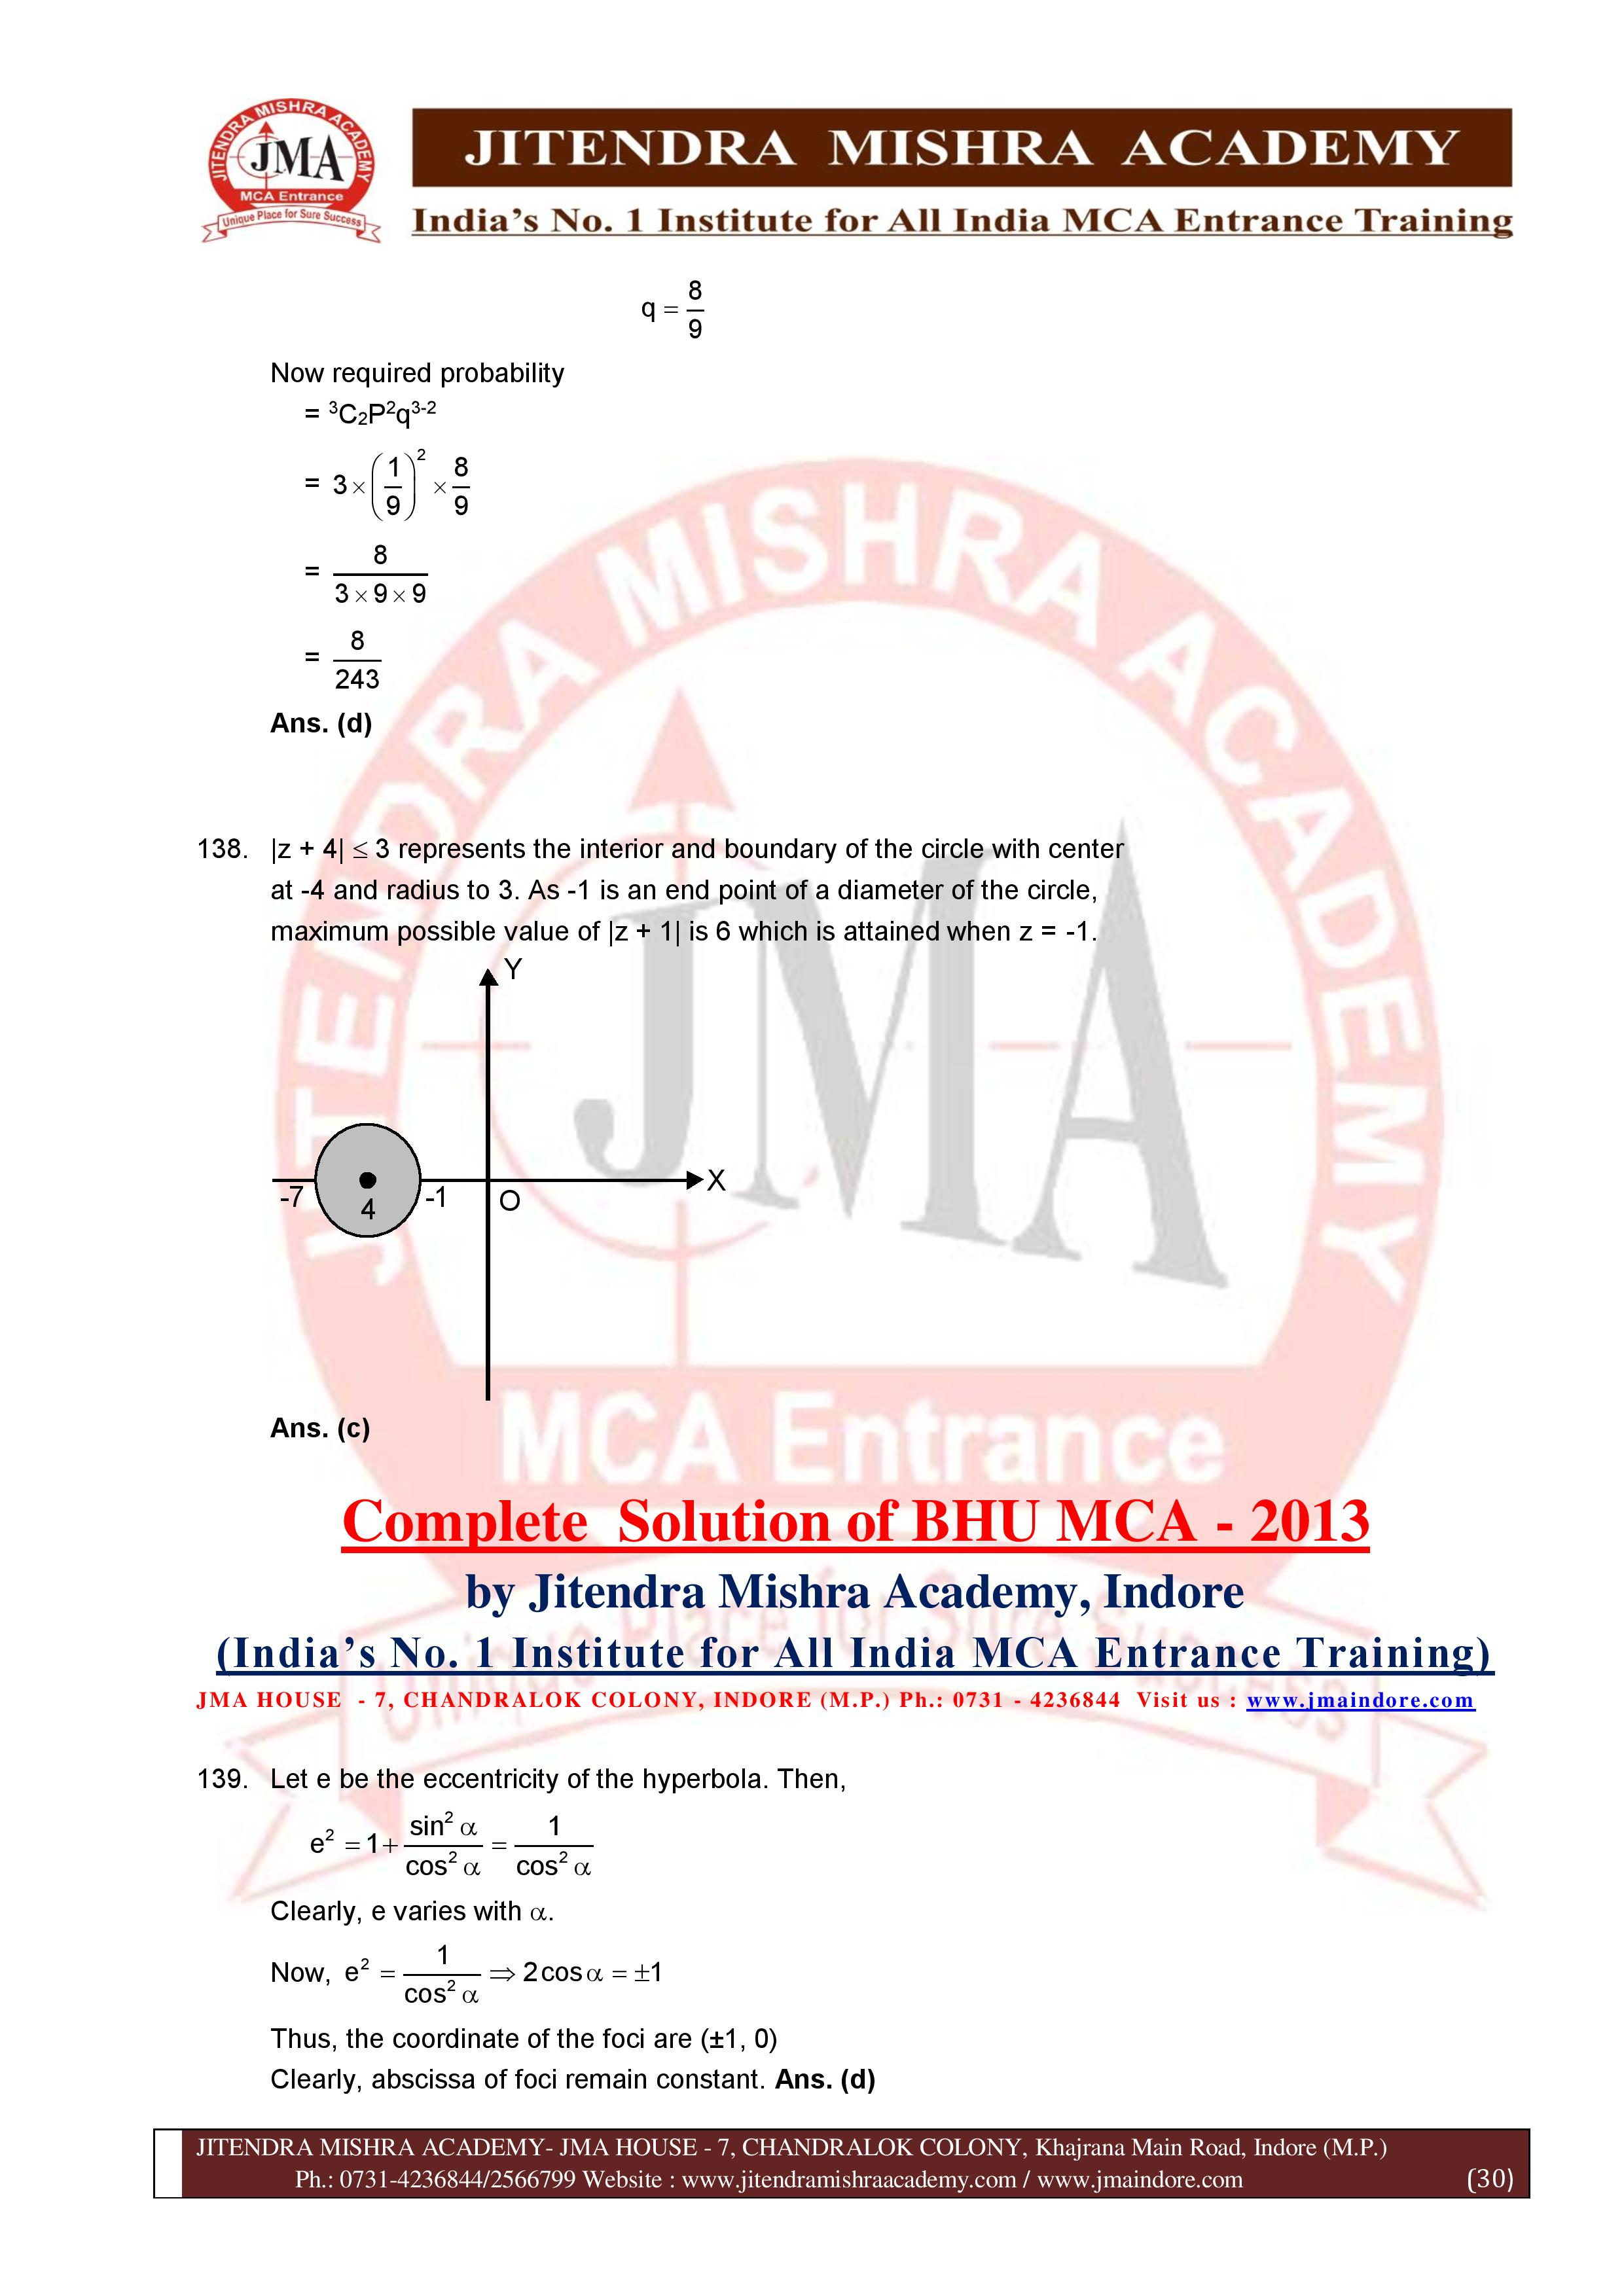 BHU 2013 SOLUTION (SET - 3) (06.07.16)-page-030